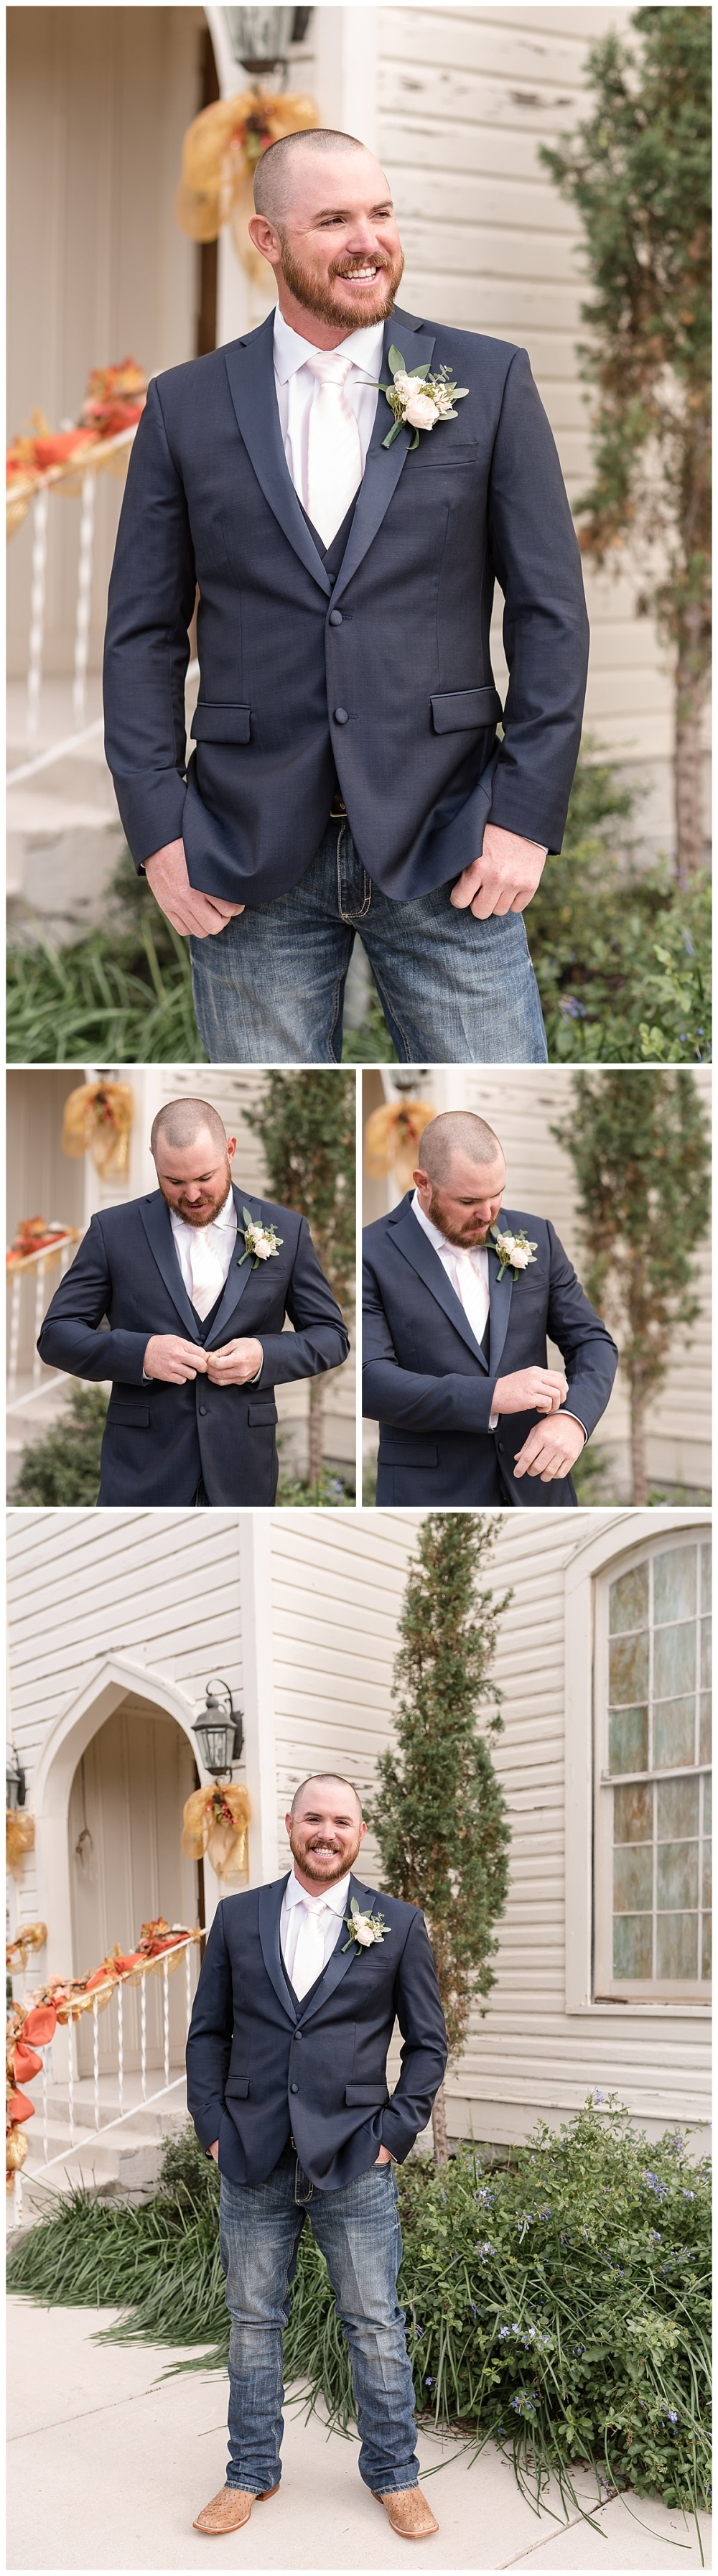 South-Texas-Wedding-Photographer-Rose-Gold-and-Navy-Theme-LaVernia-Bride-Groom-Carly-Barton-Photography_0009